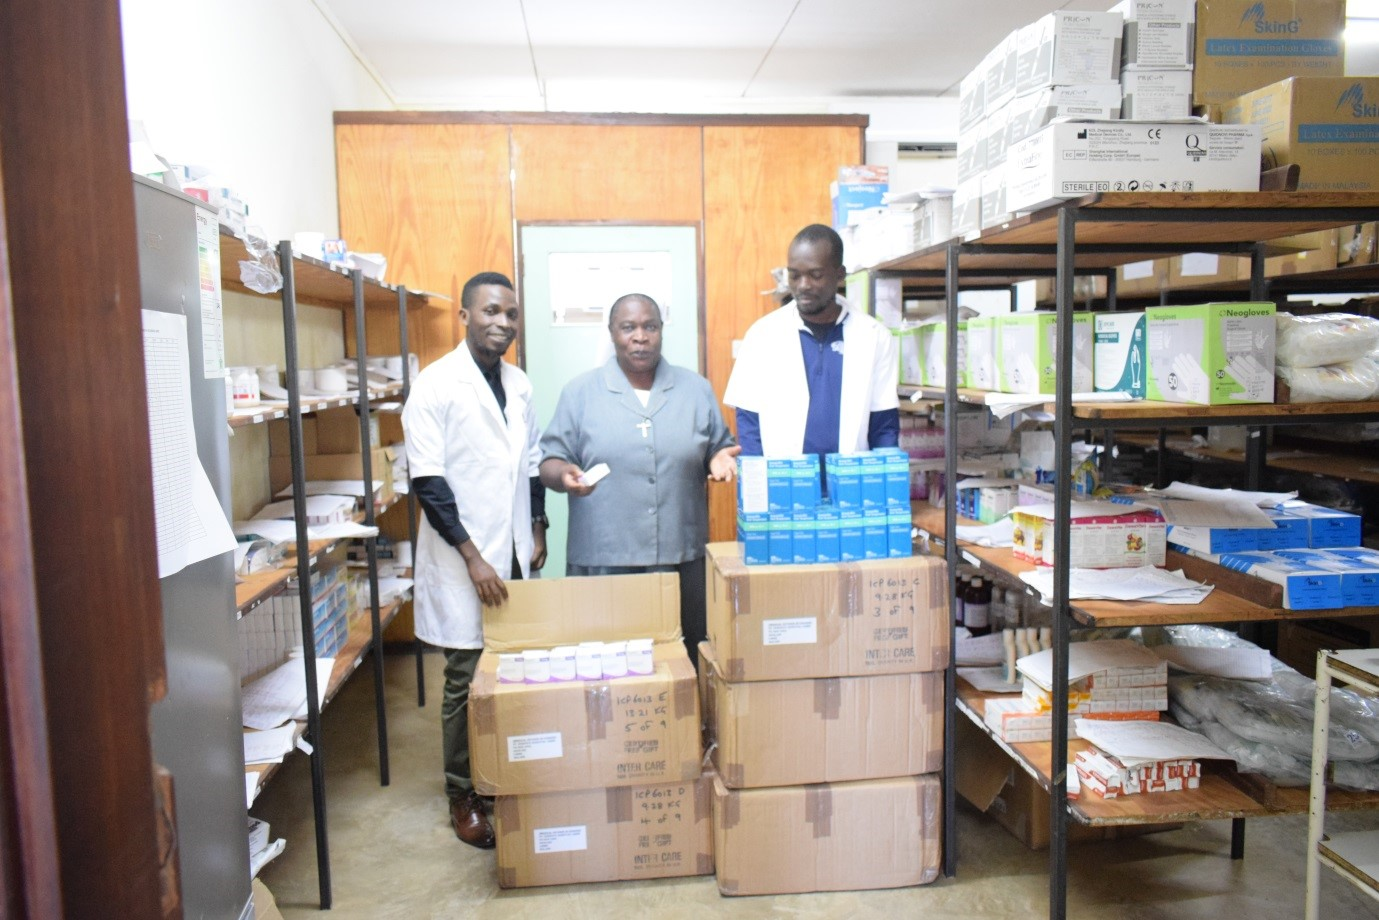 African hospital praises support of Leicestershire Business